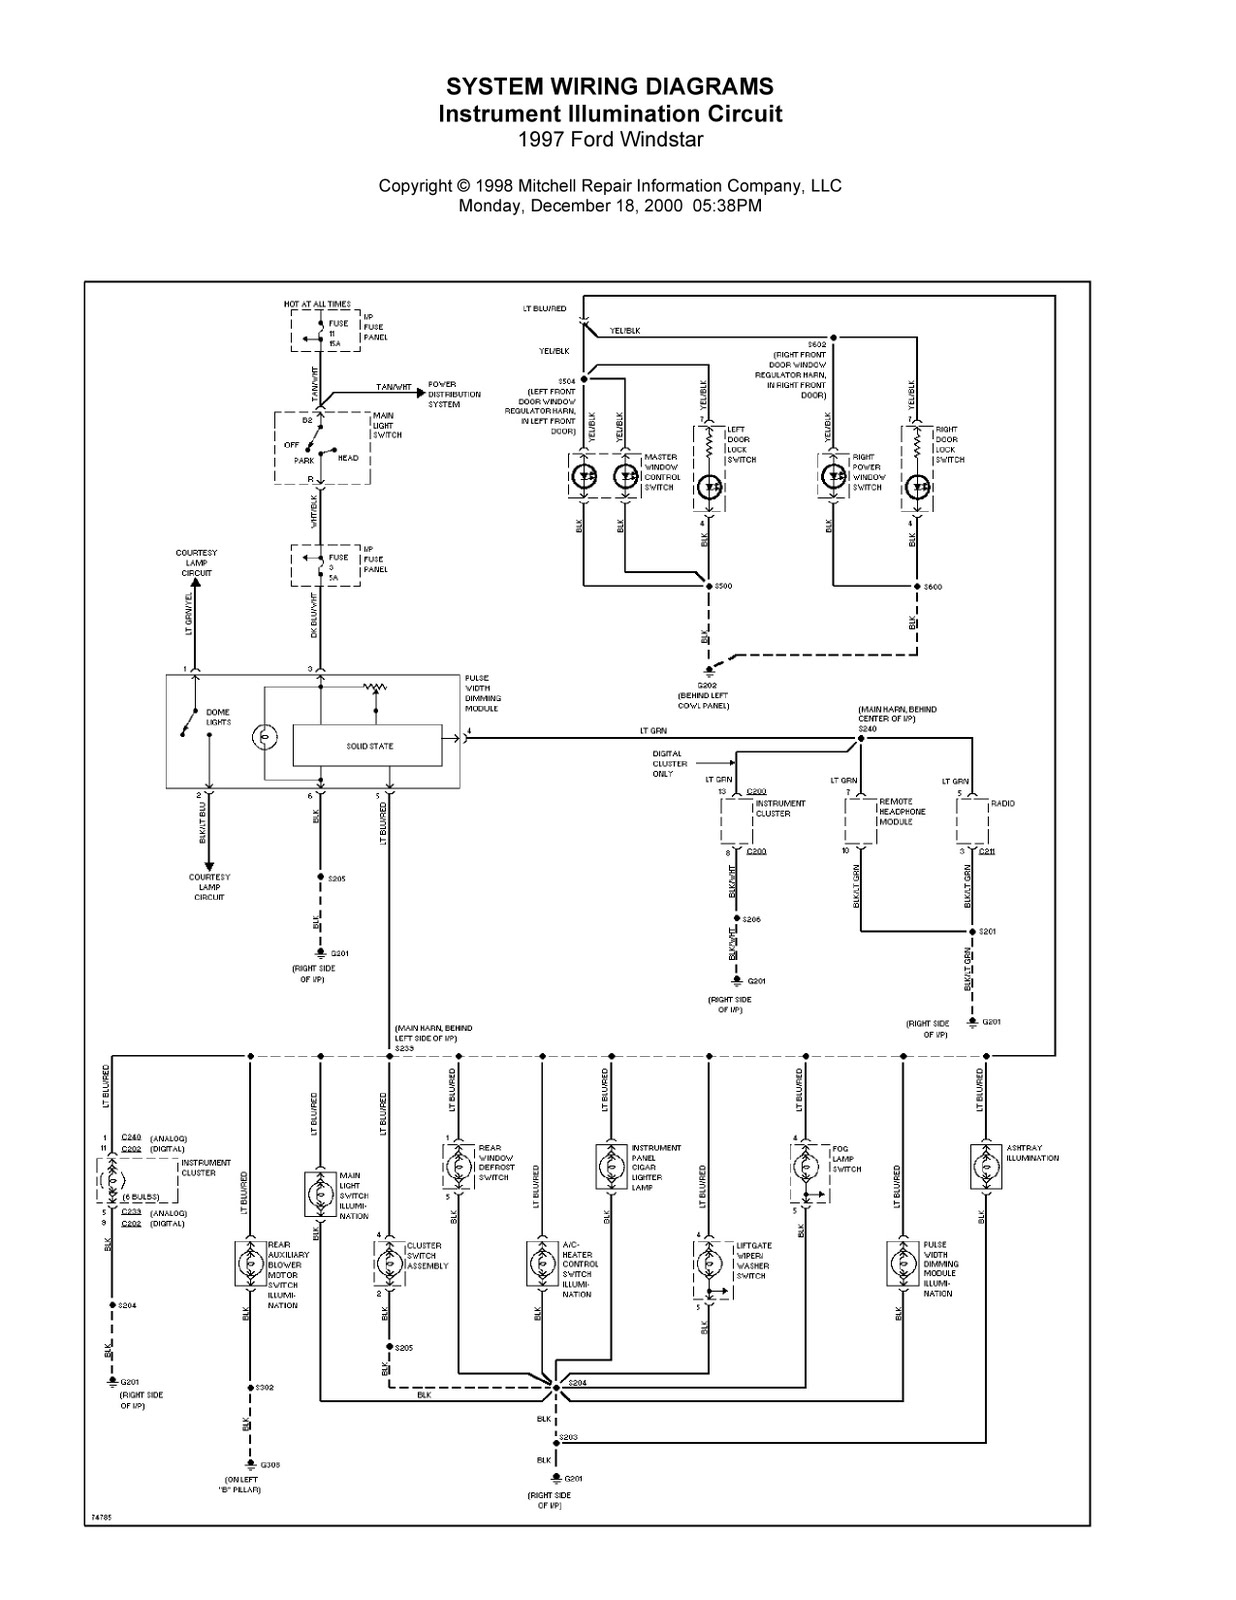 Wiring Diagrams For Ford Windstar 1997 Fuse Diagram Complete System 2001 Recalls Abs